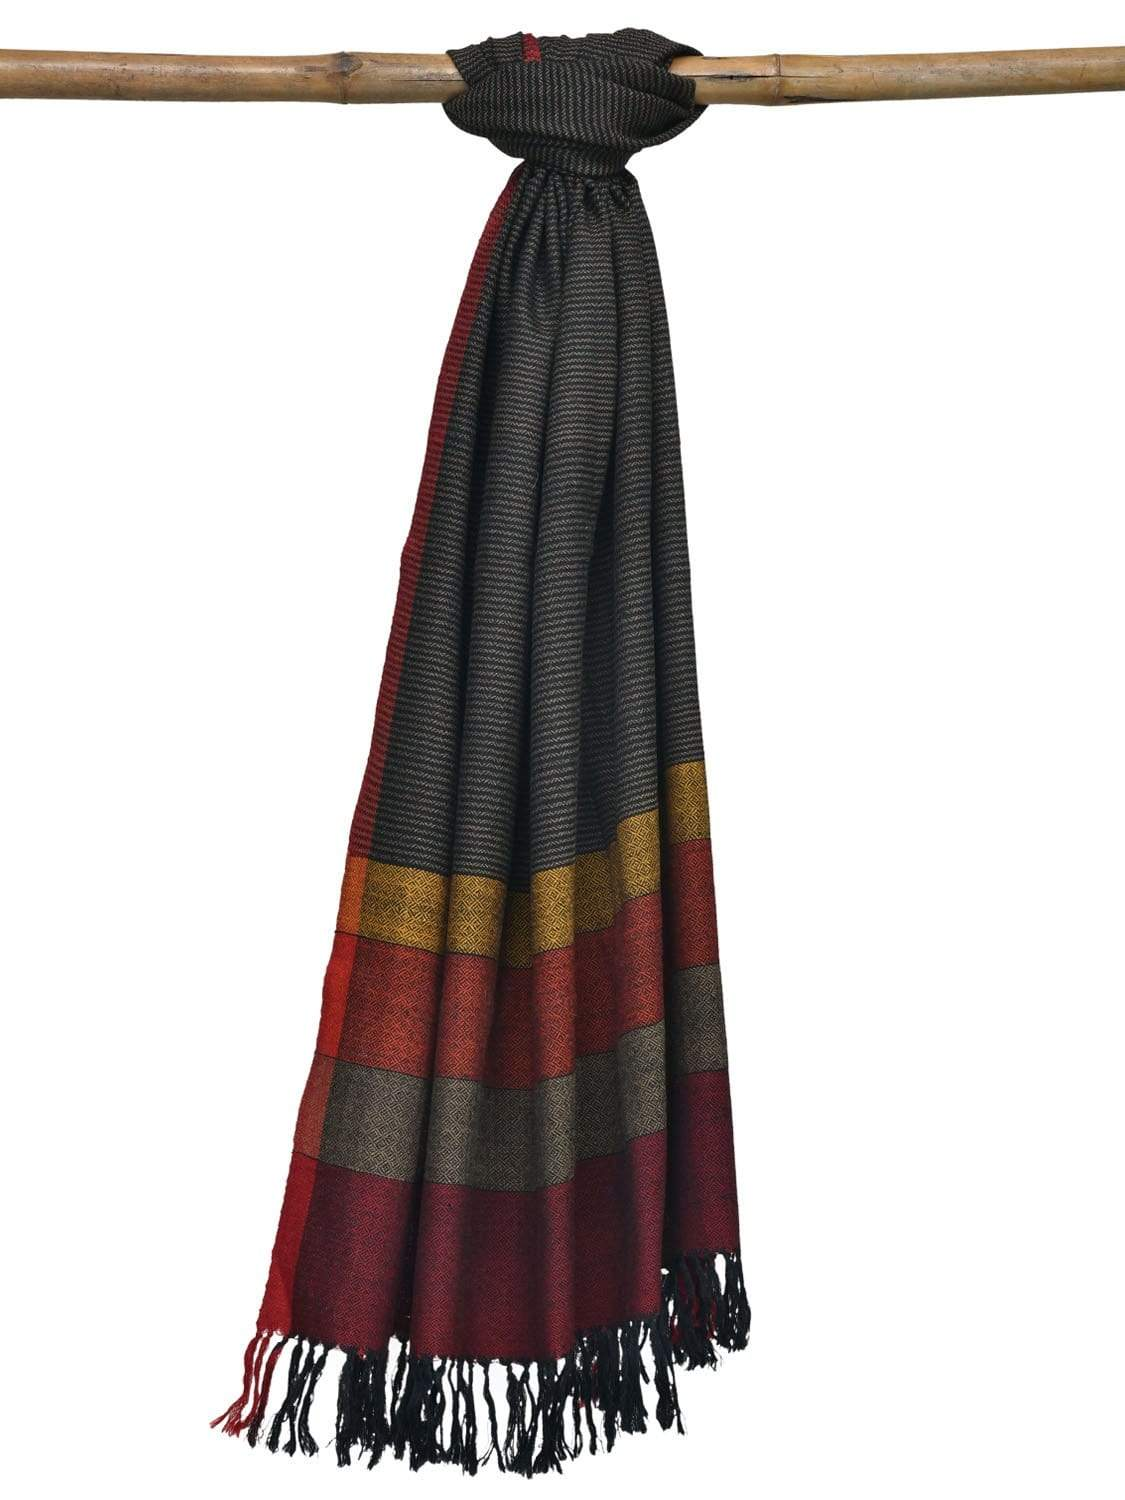 Grey Hand Woven Woolen Shawl Dupatta with Strips Design ds1859